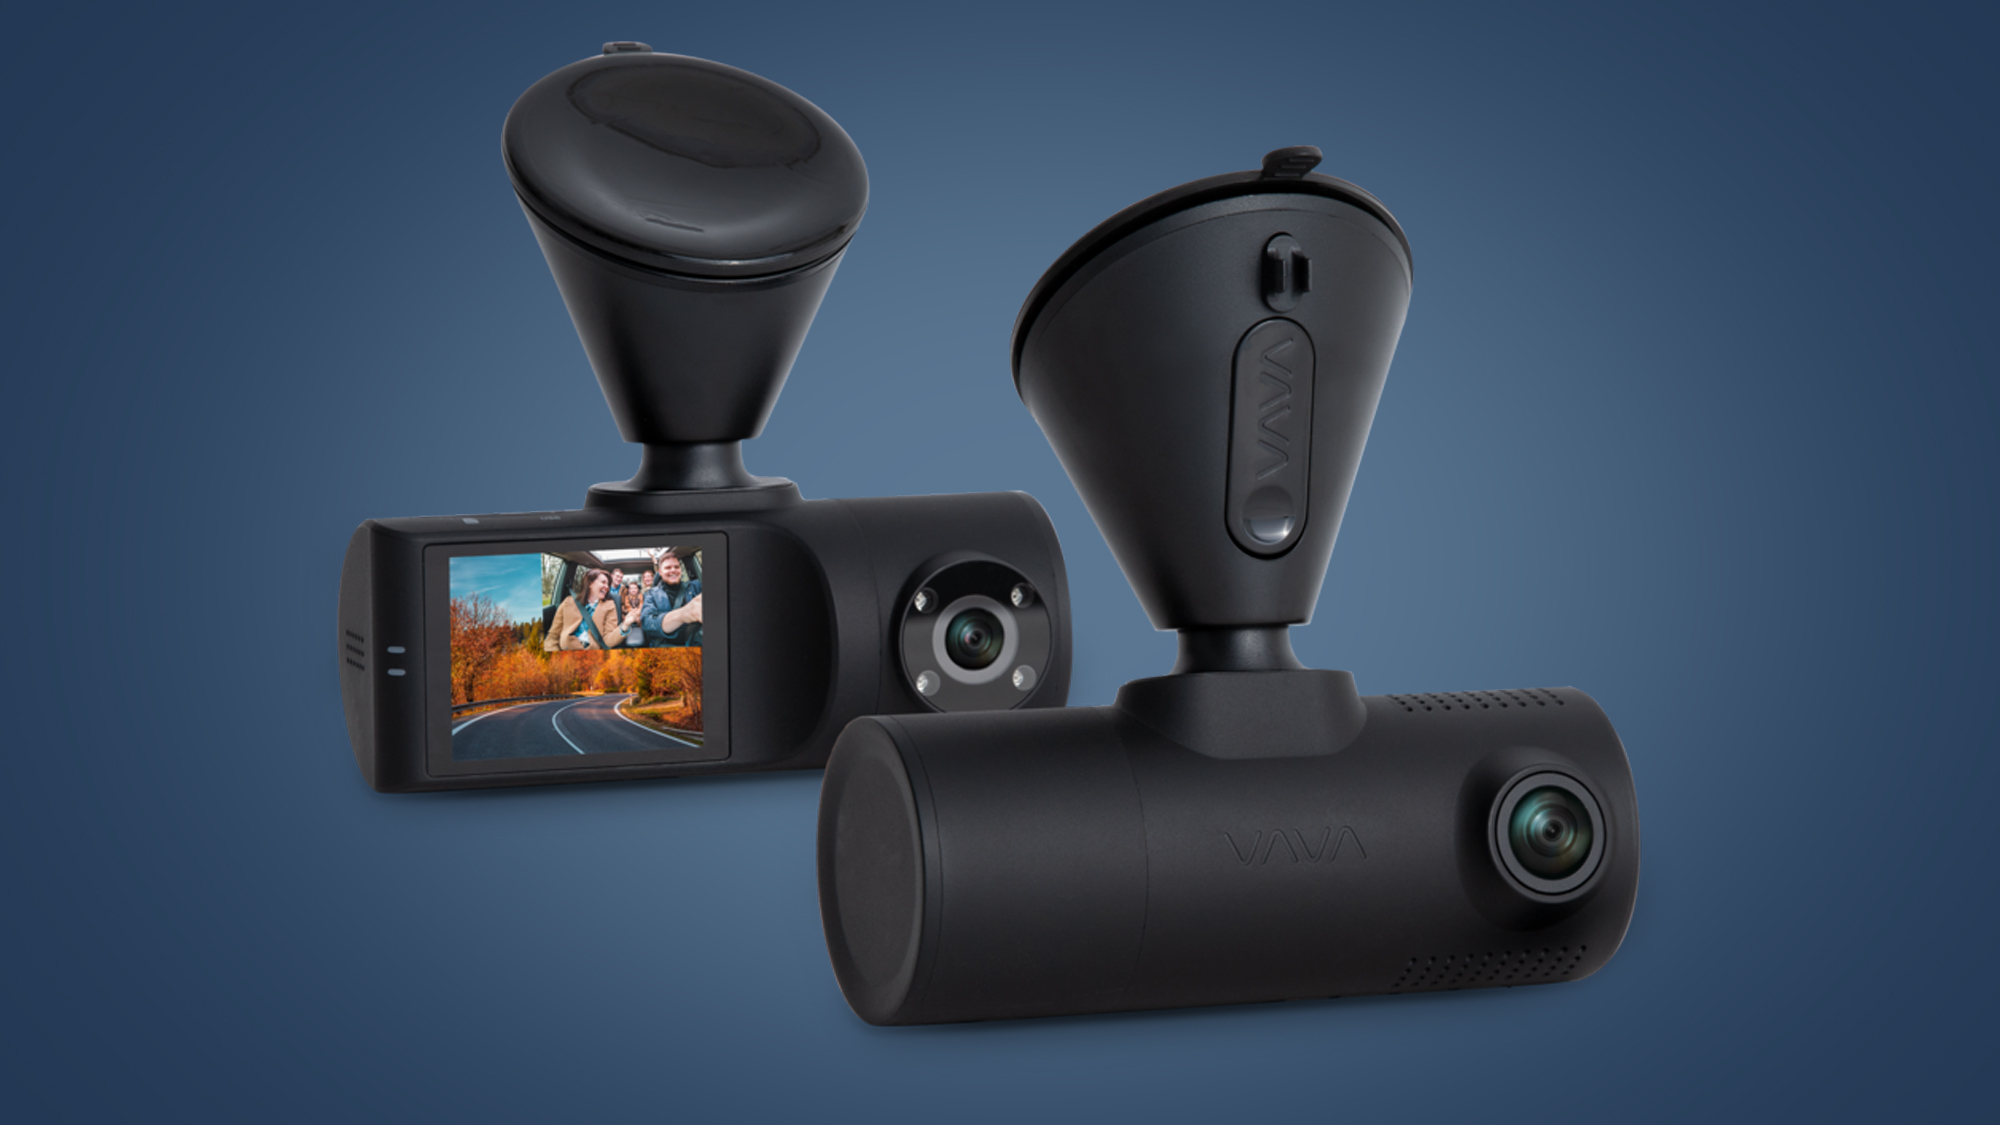 The front and rear cameras of the Vava 2K Dual Dash cam